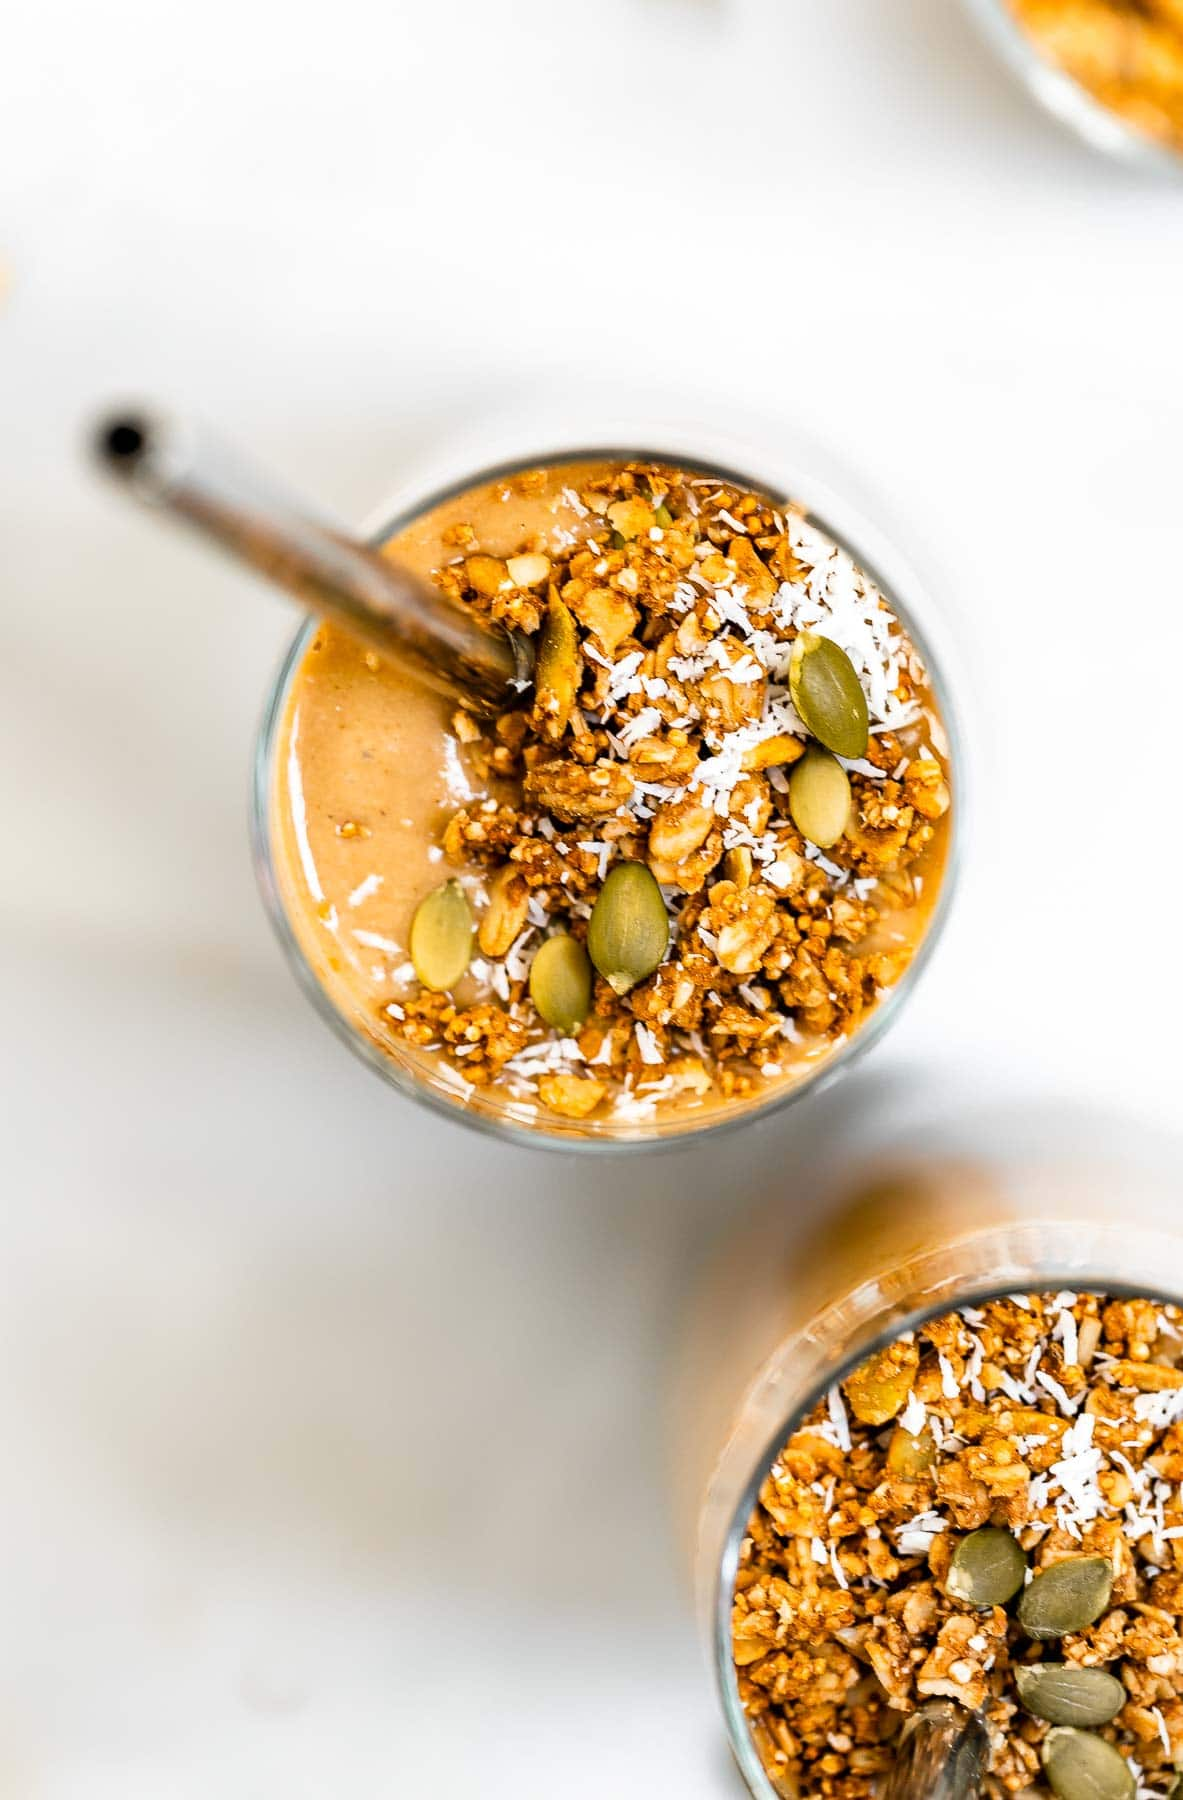 Smoothie with pumpkin seeds on top with a straw.